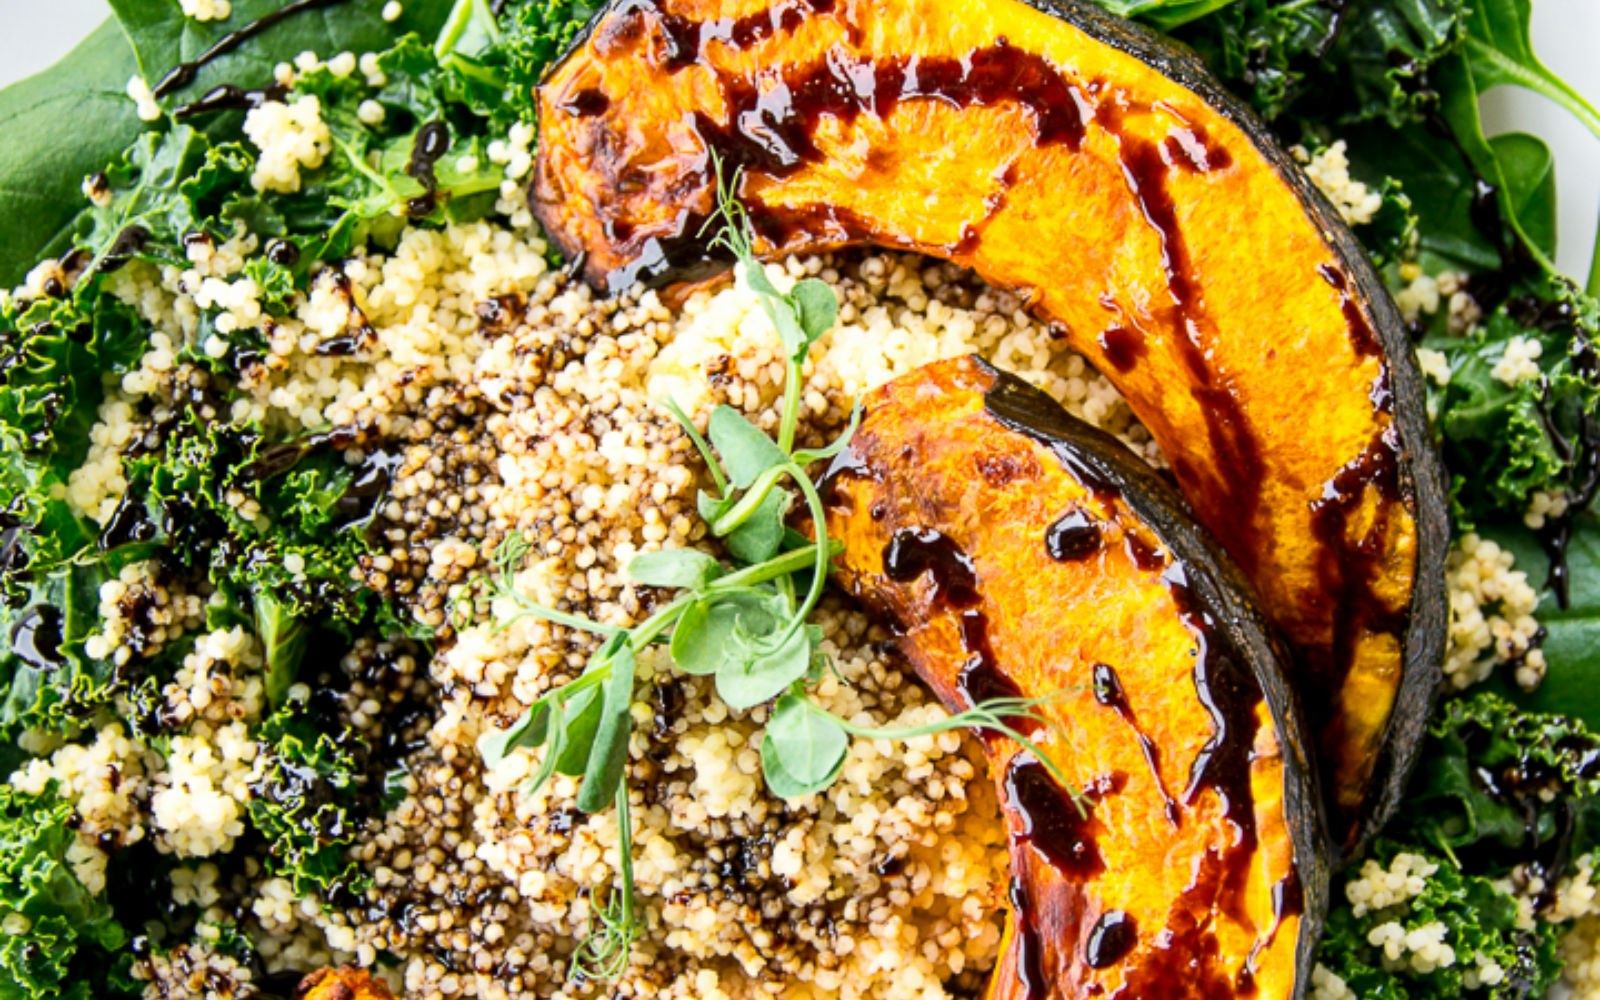 Vegan Gluten-Free Pumpkin, Millet and Kale Salad with Balsamic Reduction